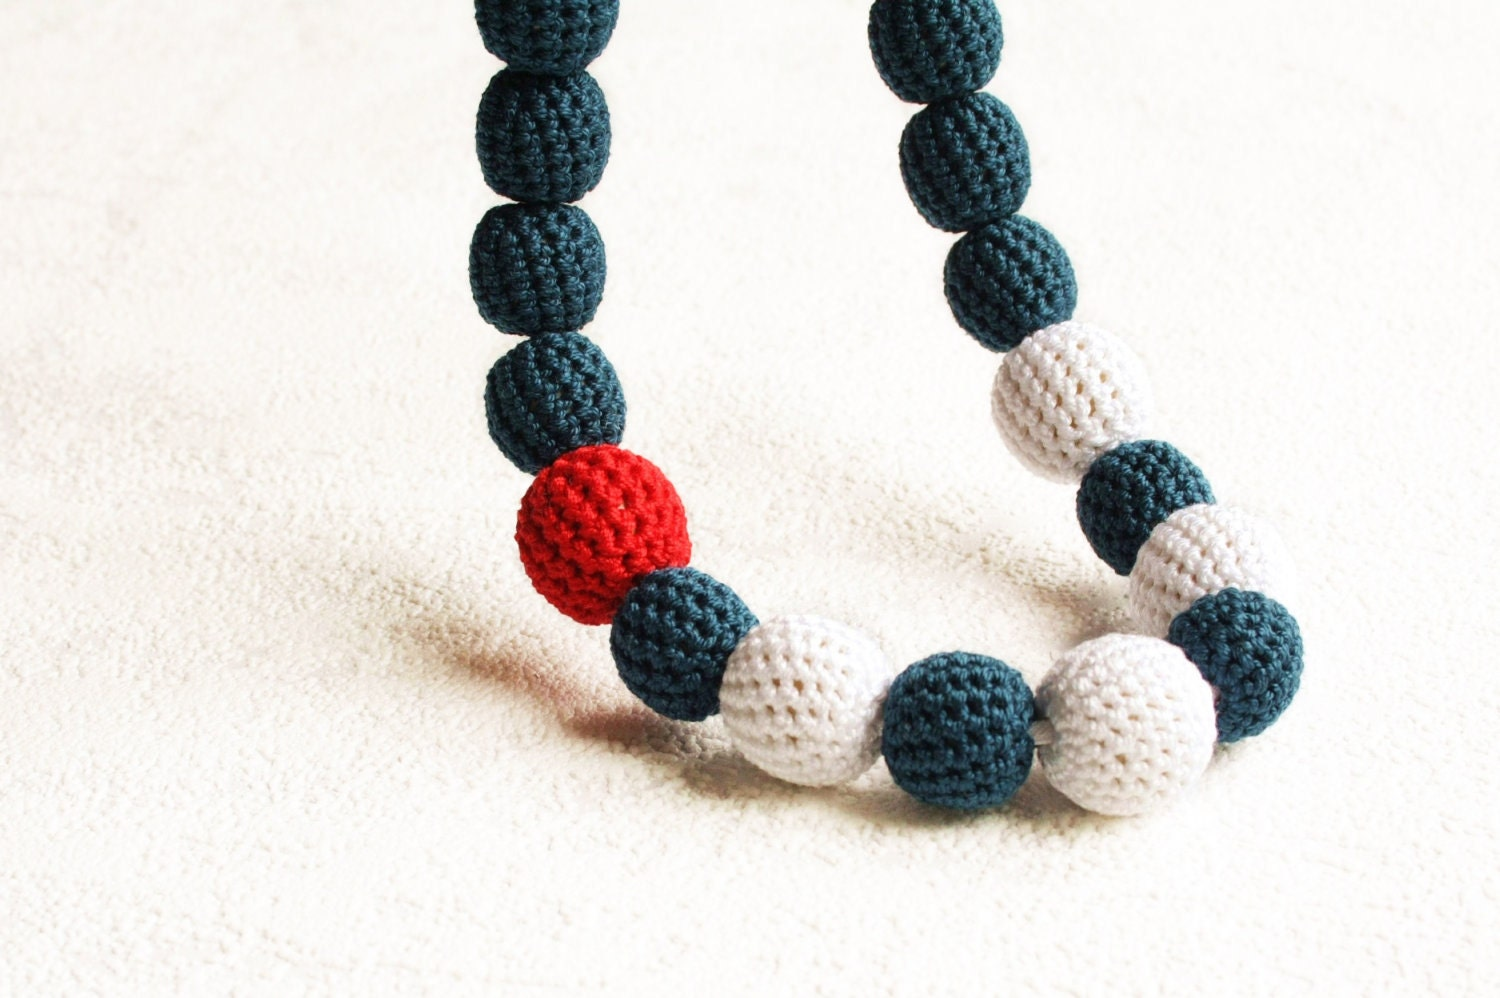 crochet sailor ethnic big necklace - handmade bead necklace in navy blue, white and red - XauXau